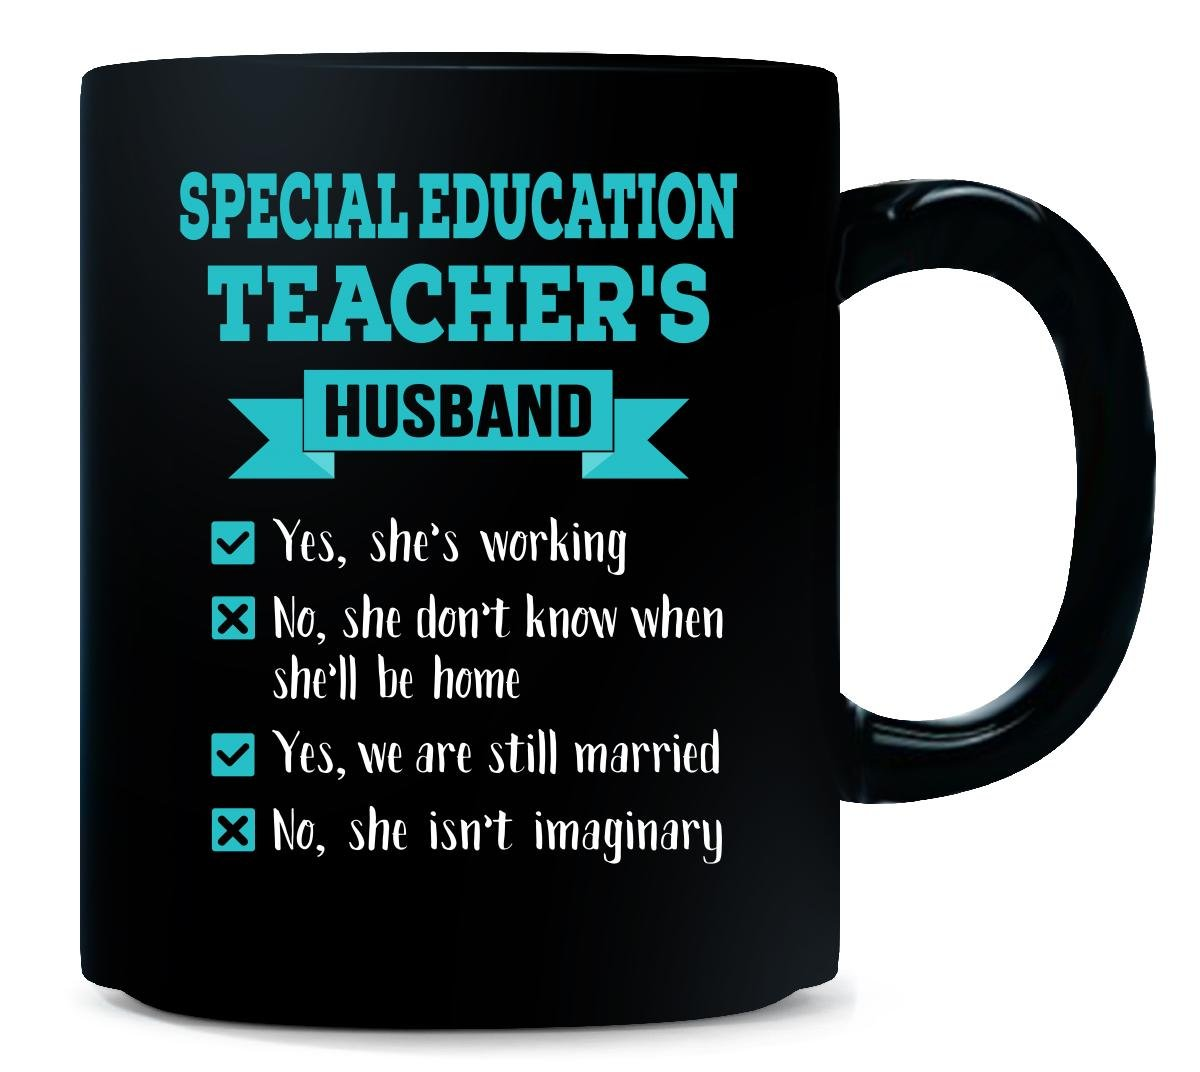 special education teacher gift mug husband quote humor